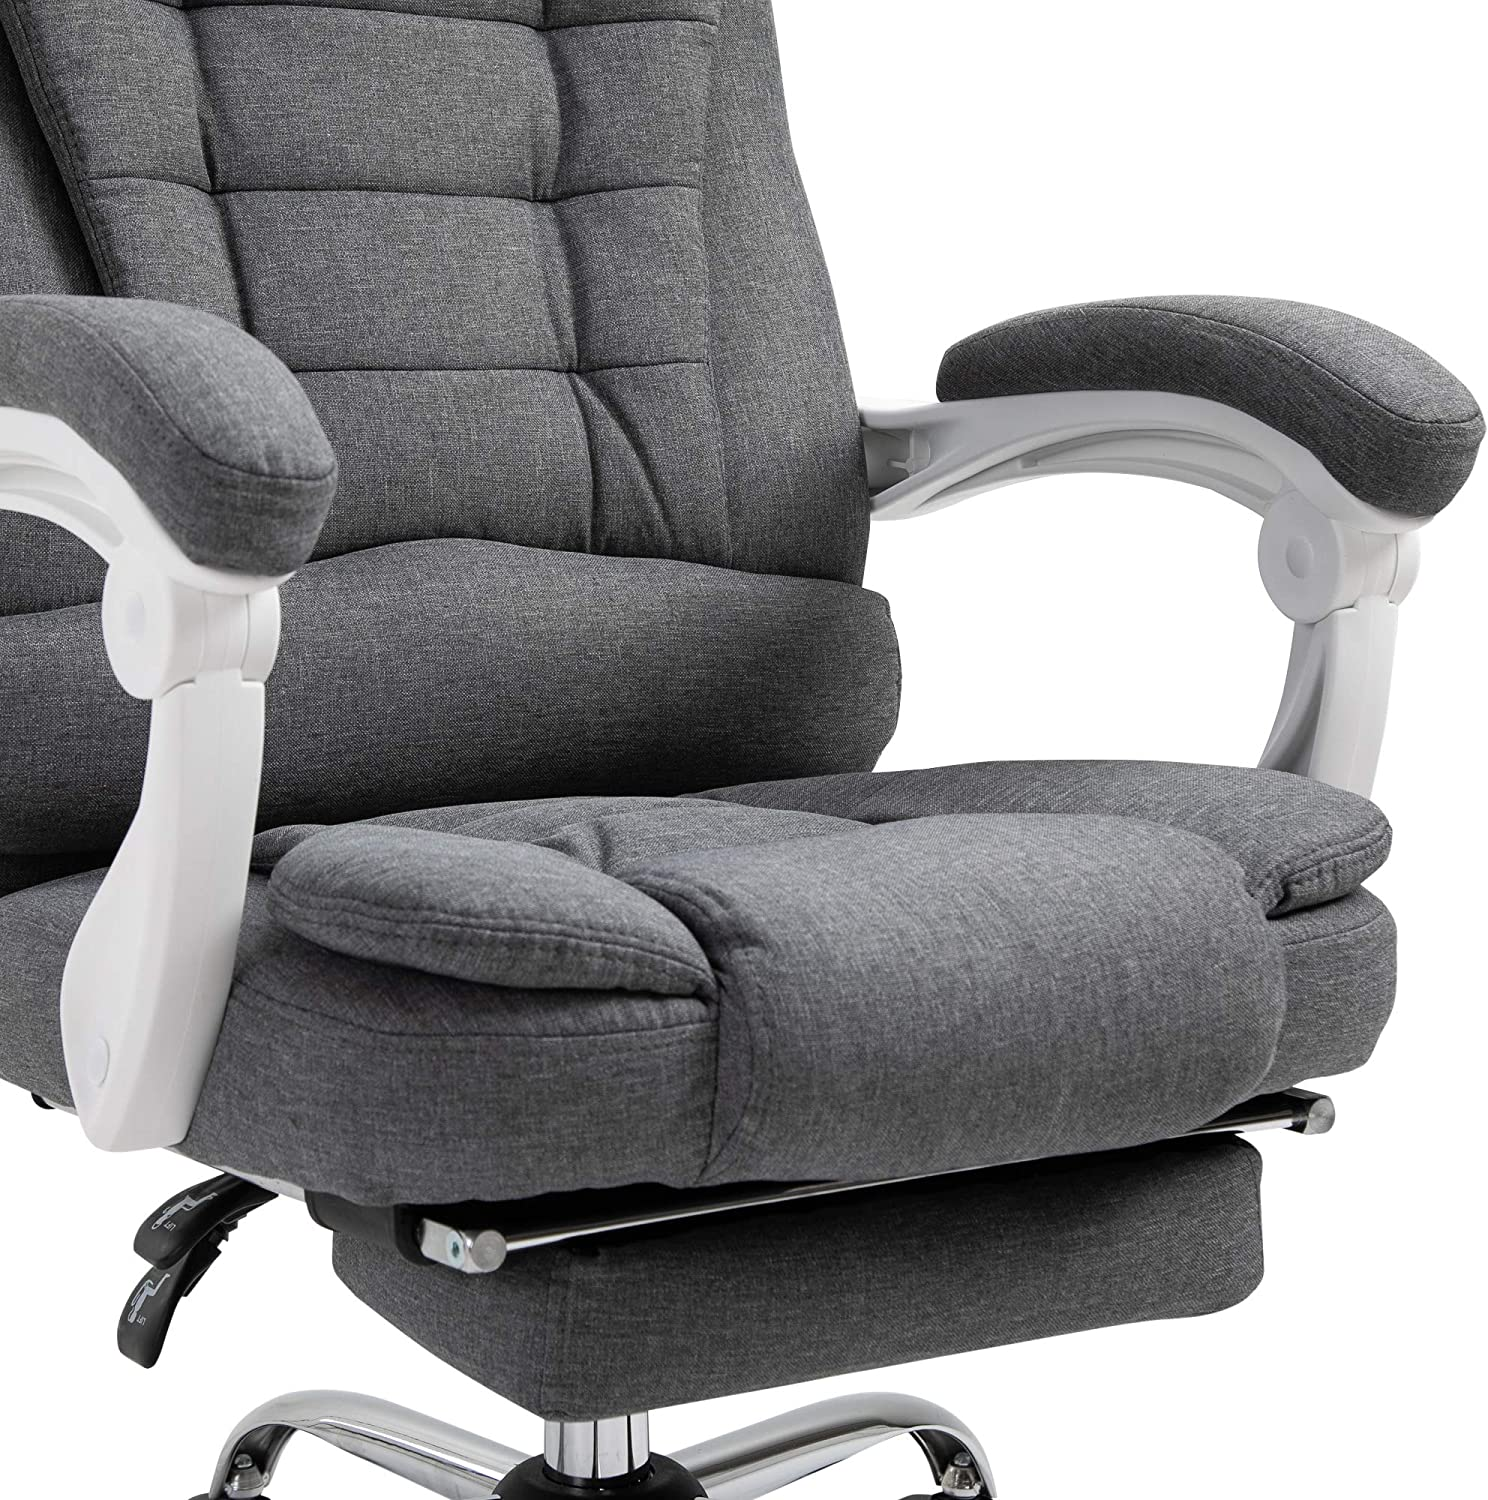 Vinsetto Office Chair Computer Swivel Rolling Task Chair with Retractable Footrest /& Height Adjustable Comfortable with Armrests